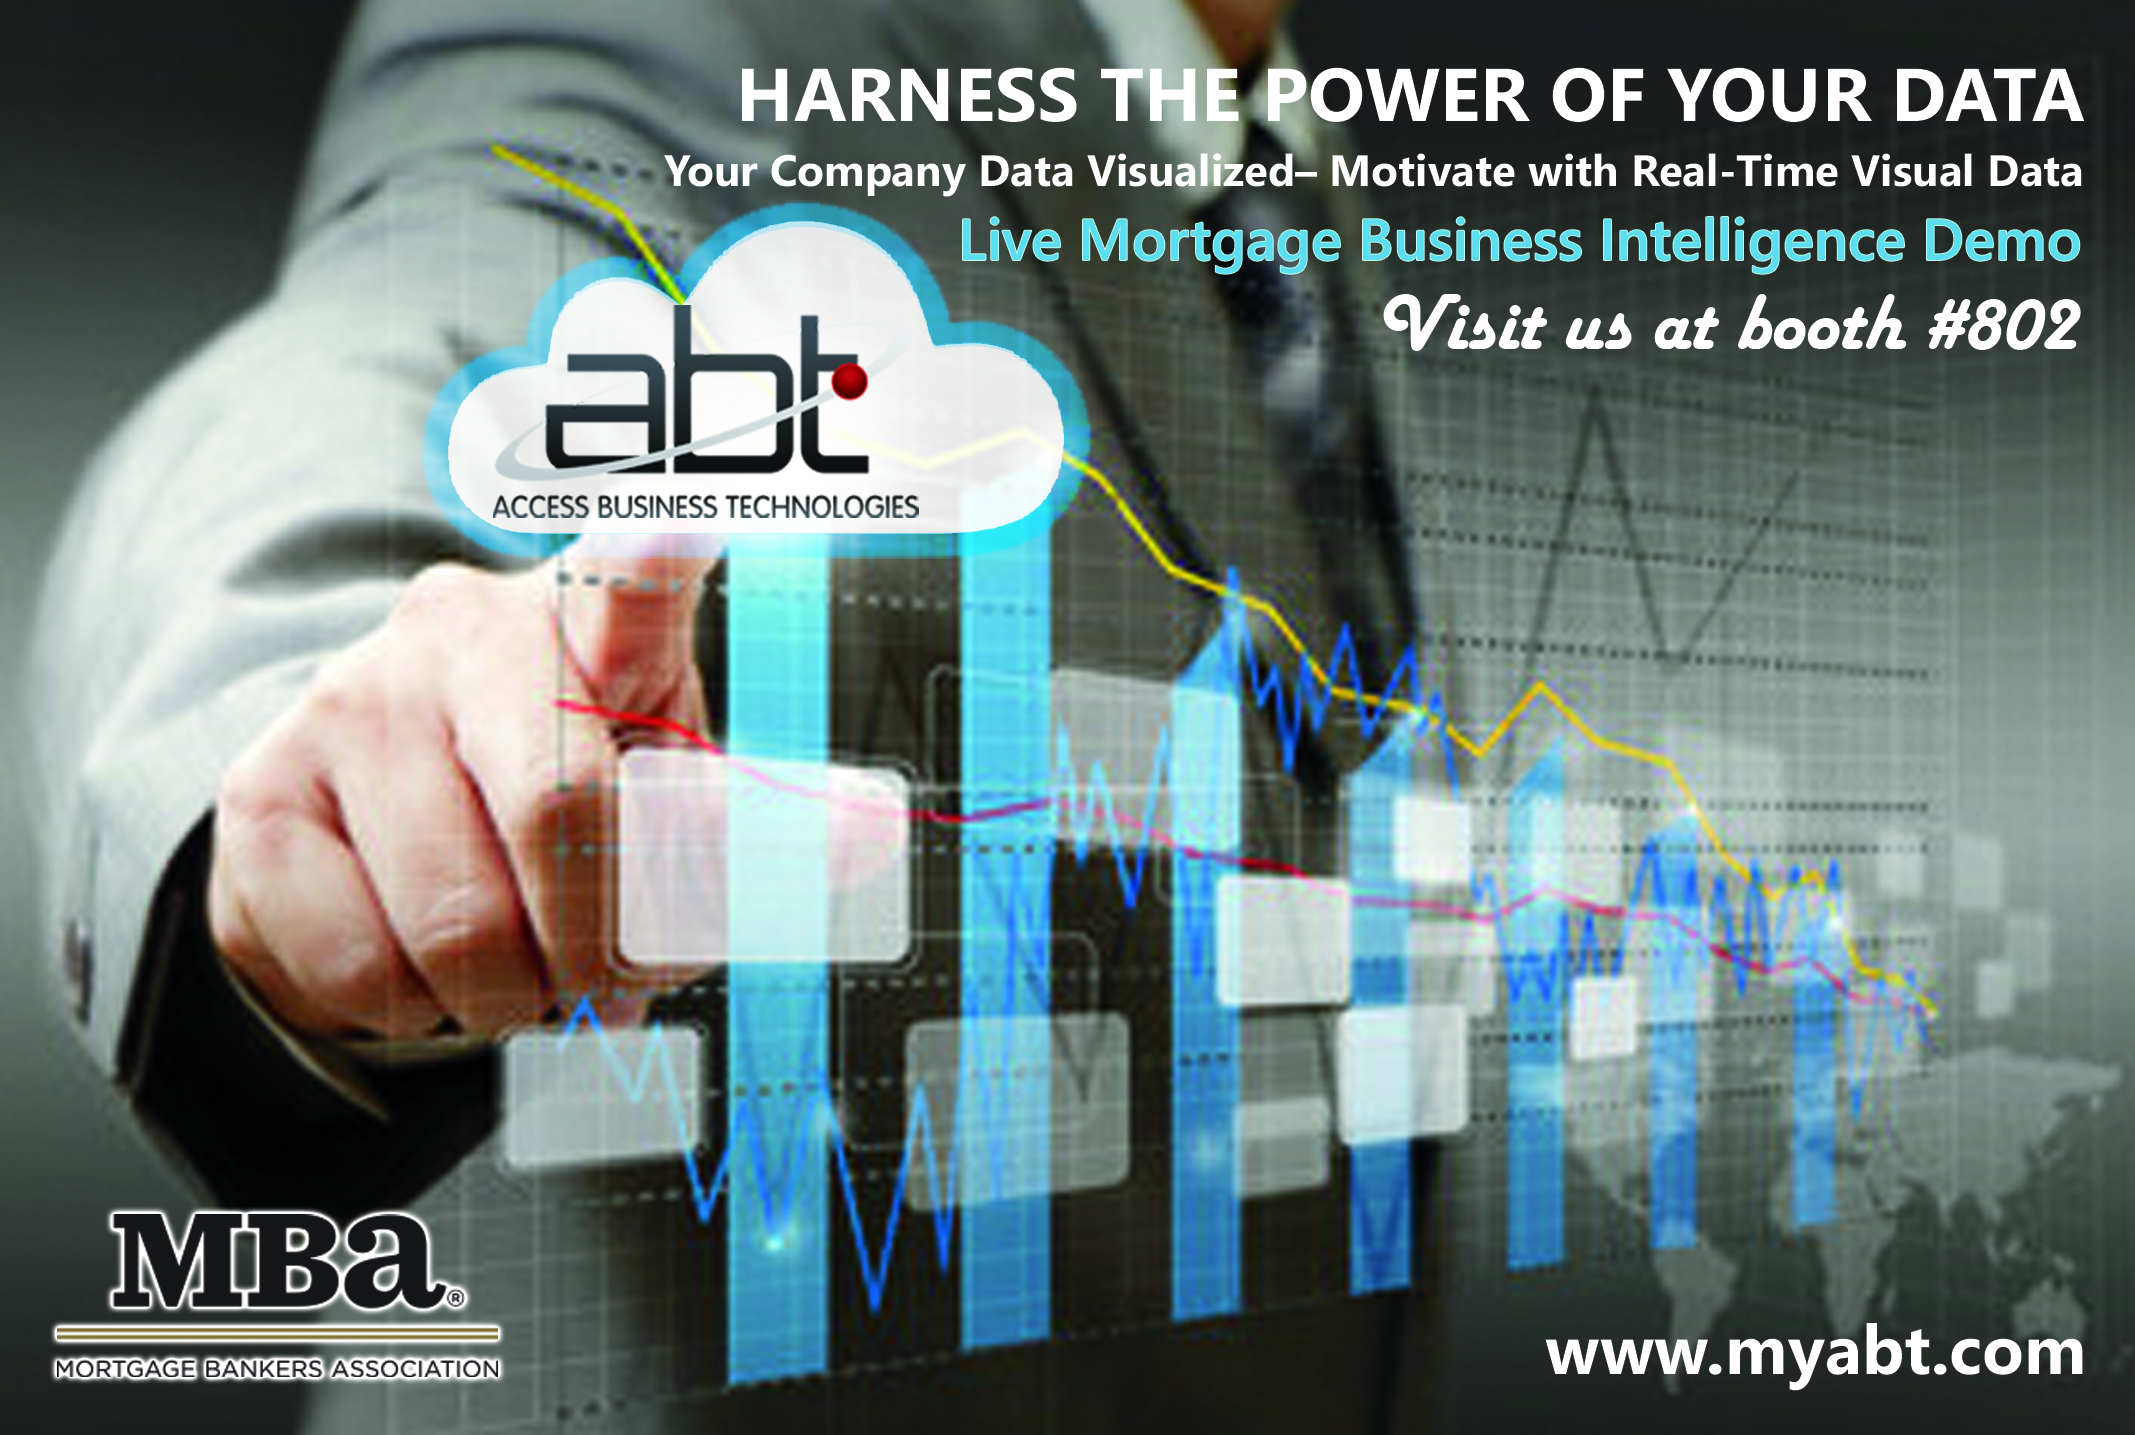 ABT will be at the annual MBA convention in Boston